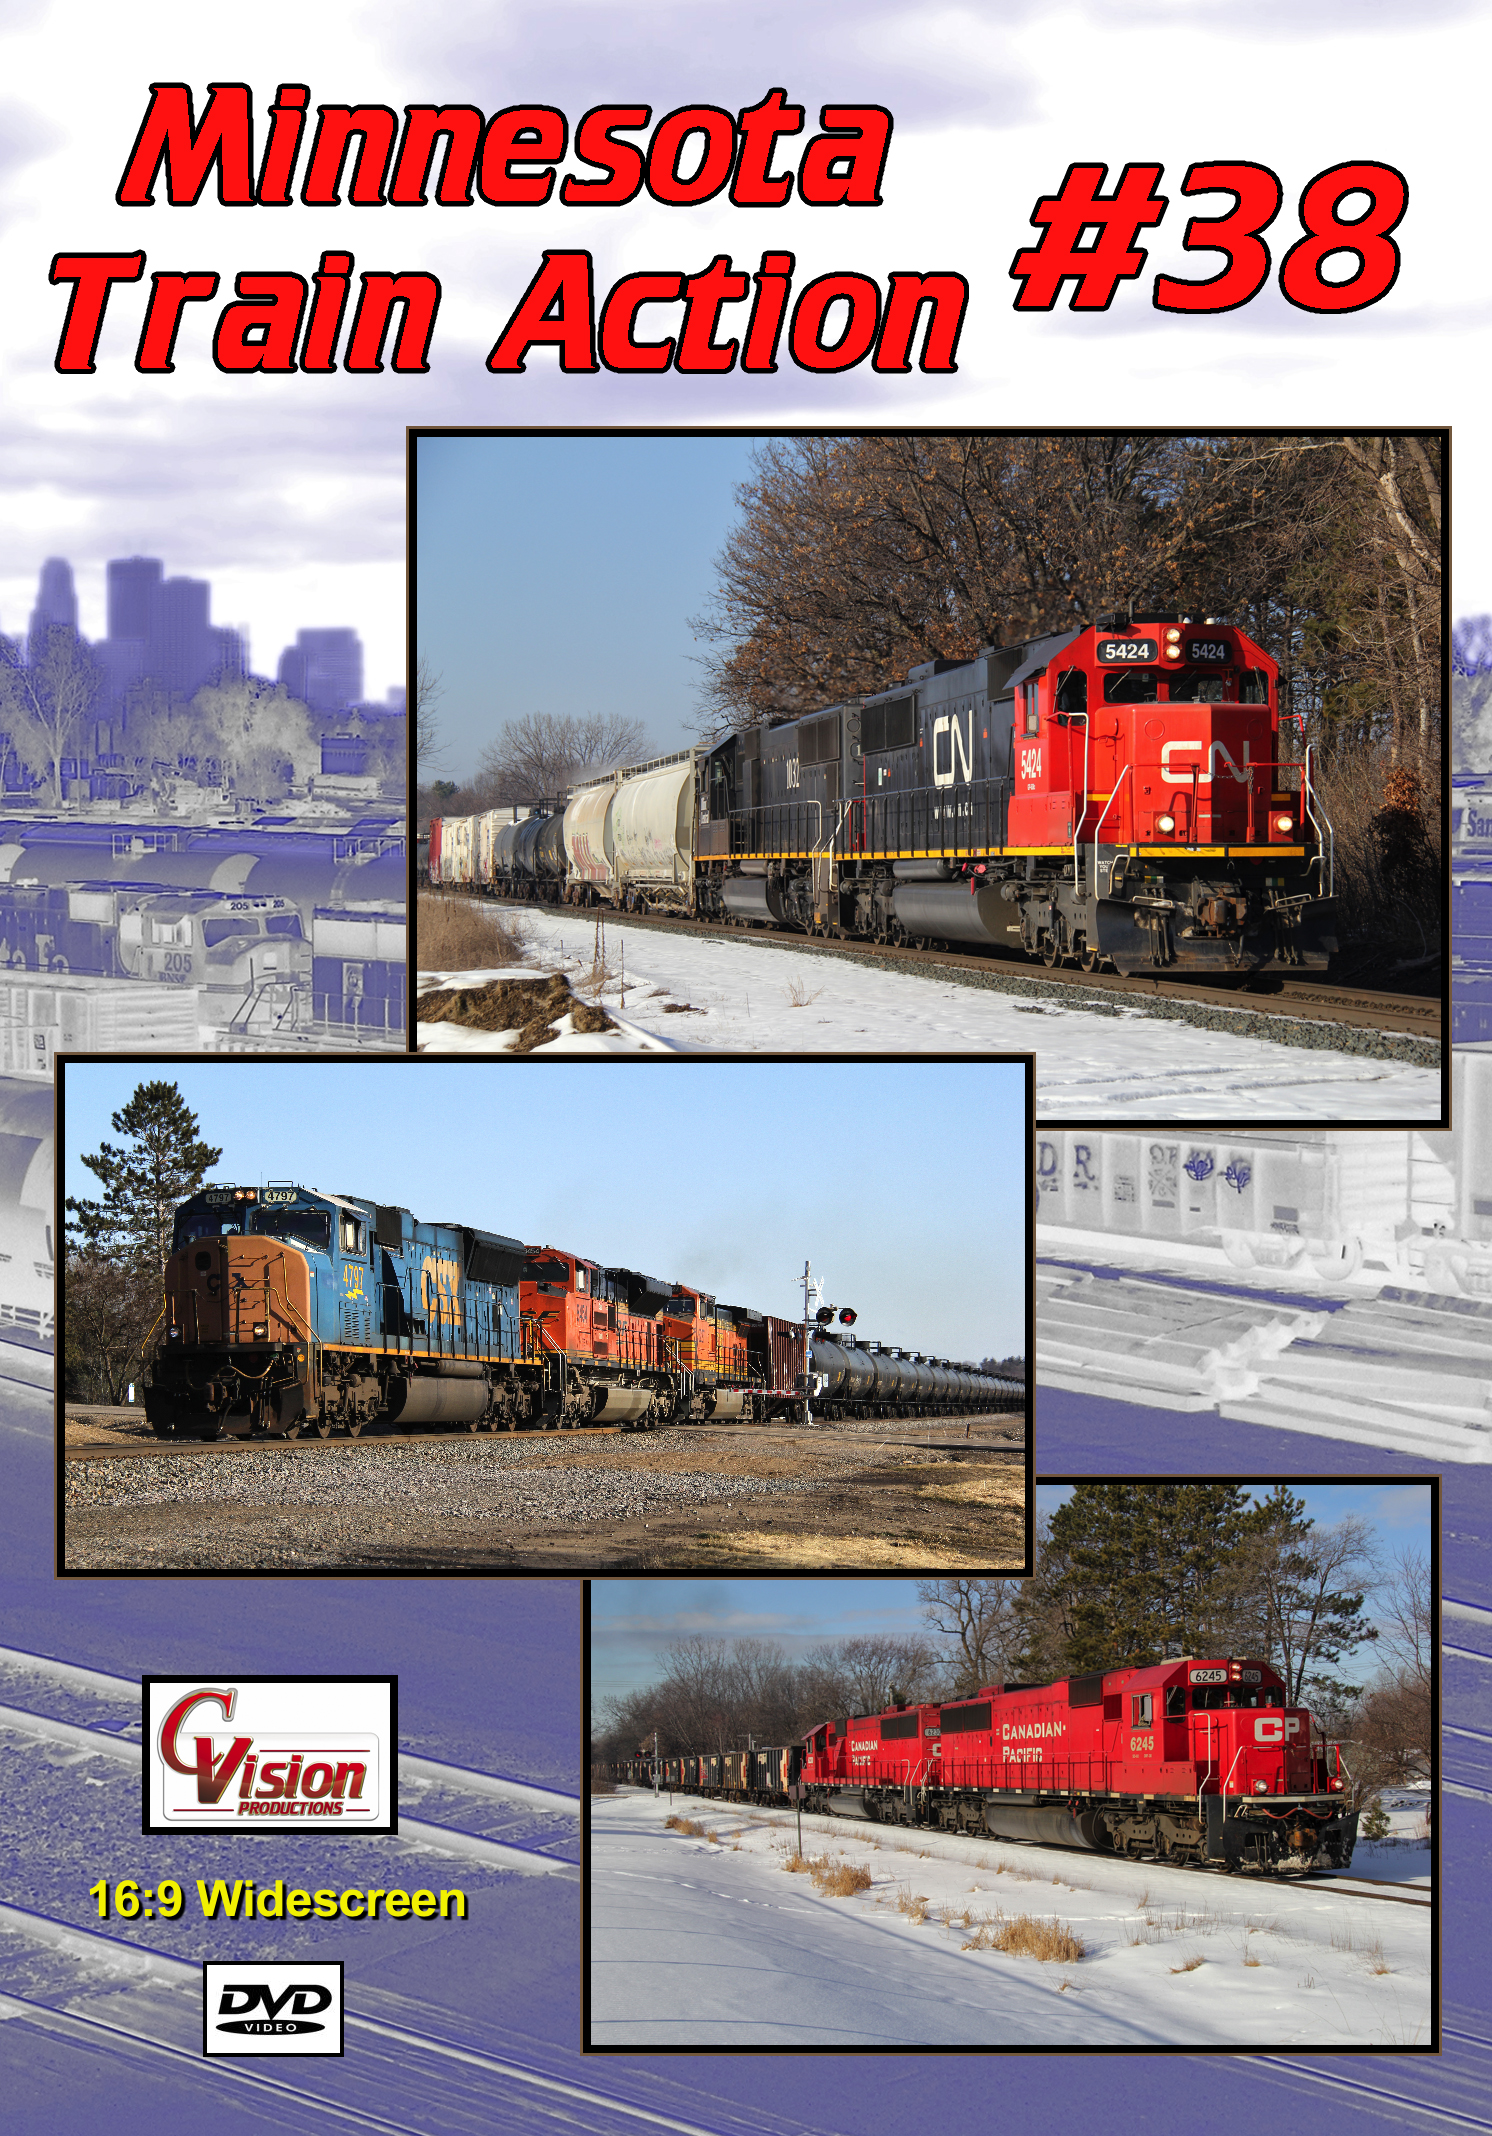 Minnesota Train Action Number 38 DVD C Vision Productions MTA38DVD